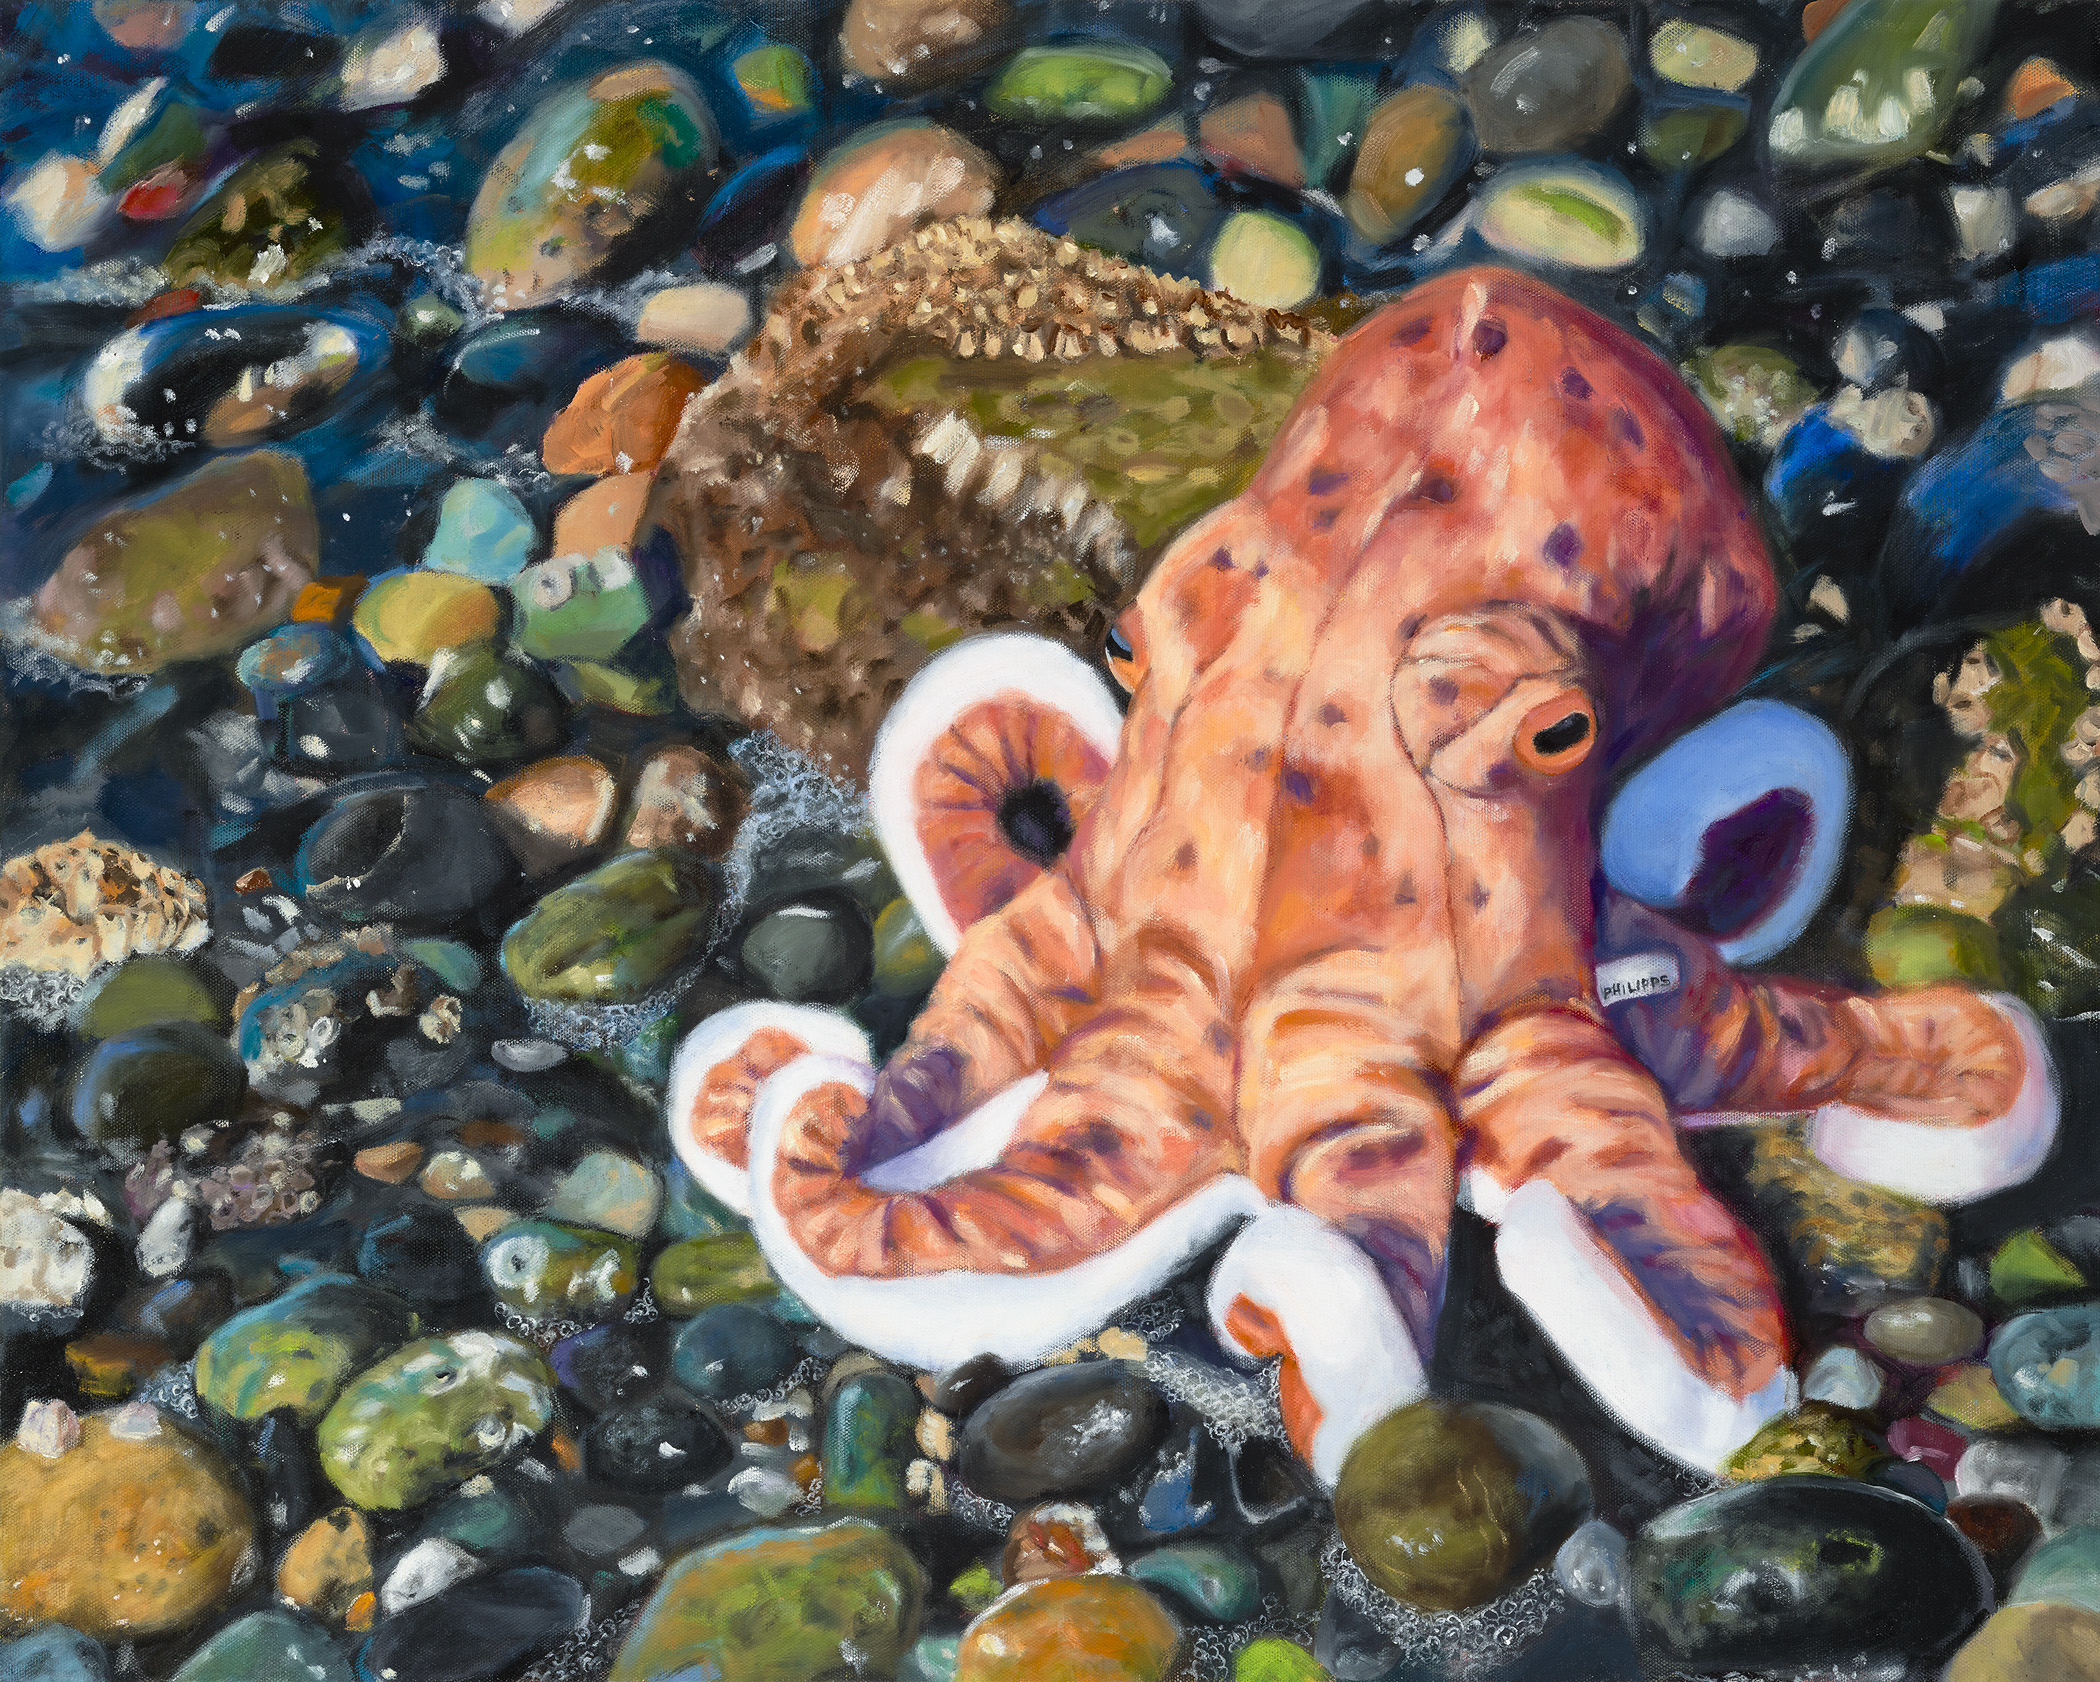 Endangered Species Series: The Giant Pacific Octopus